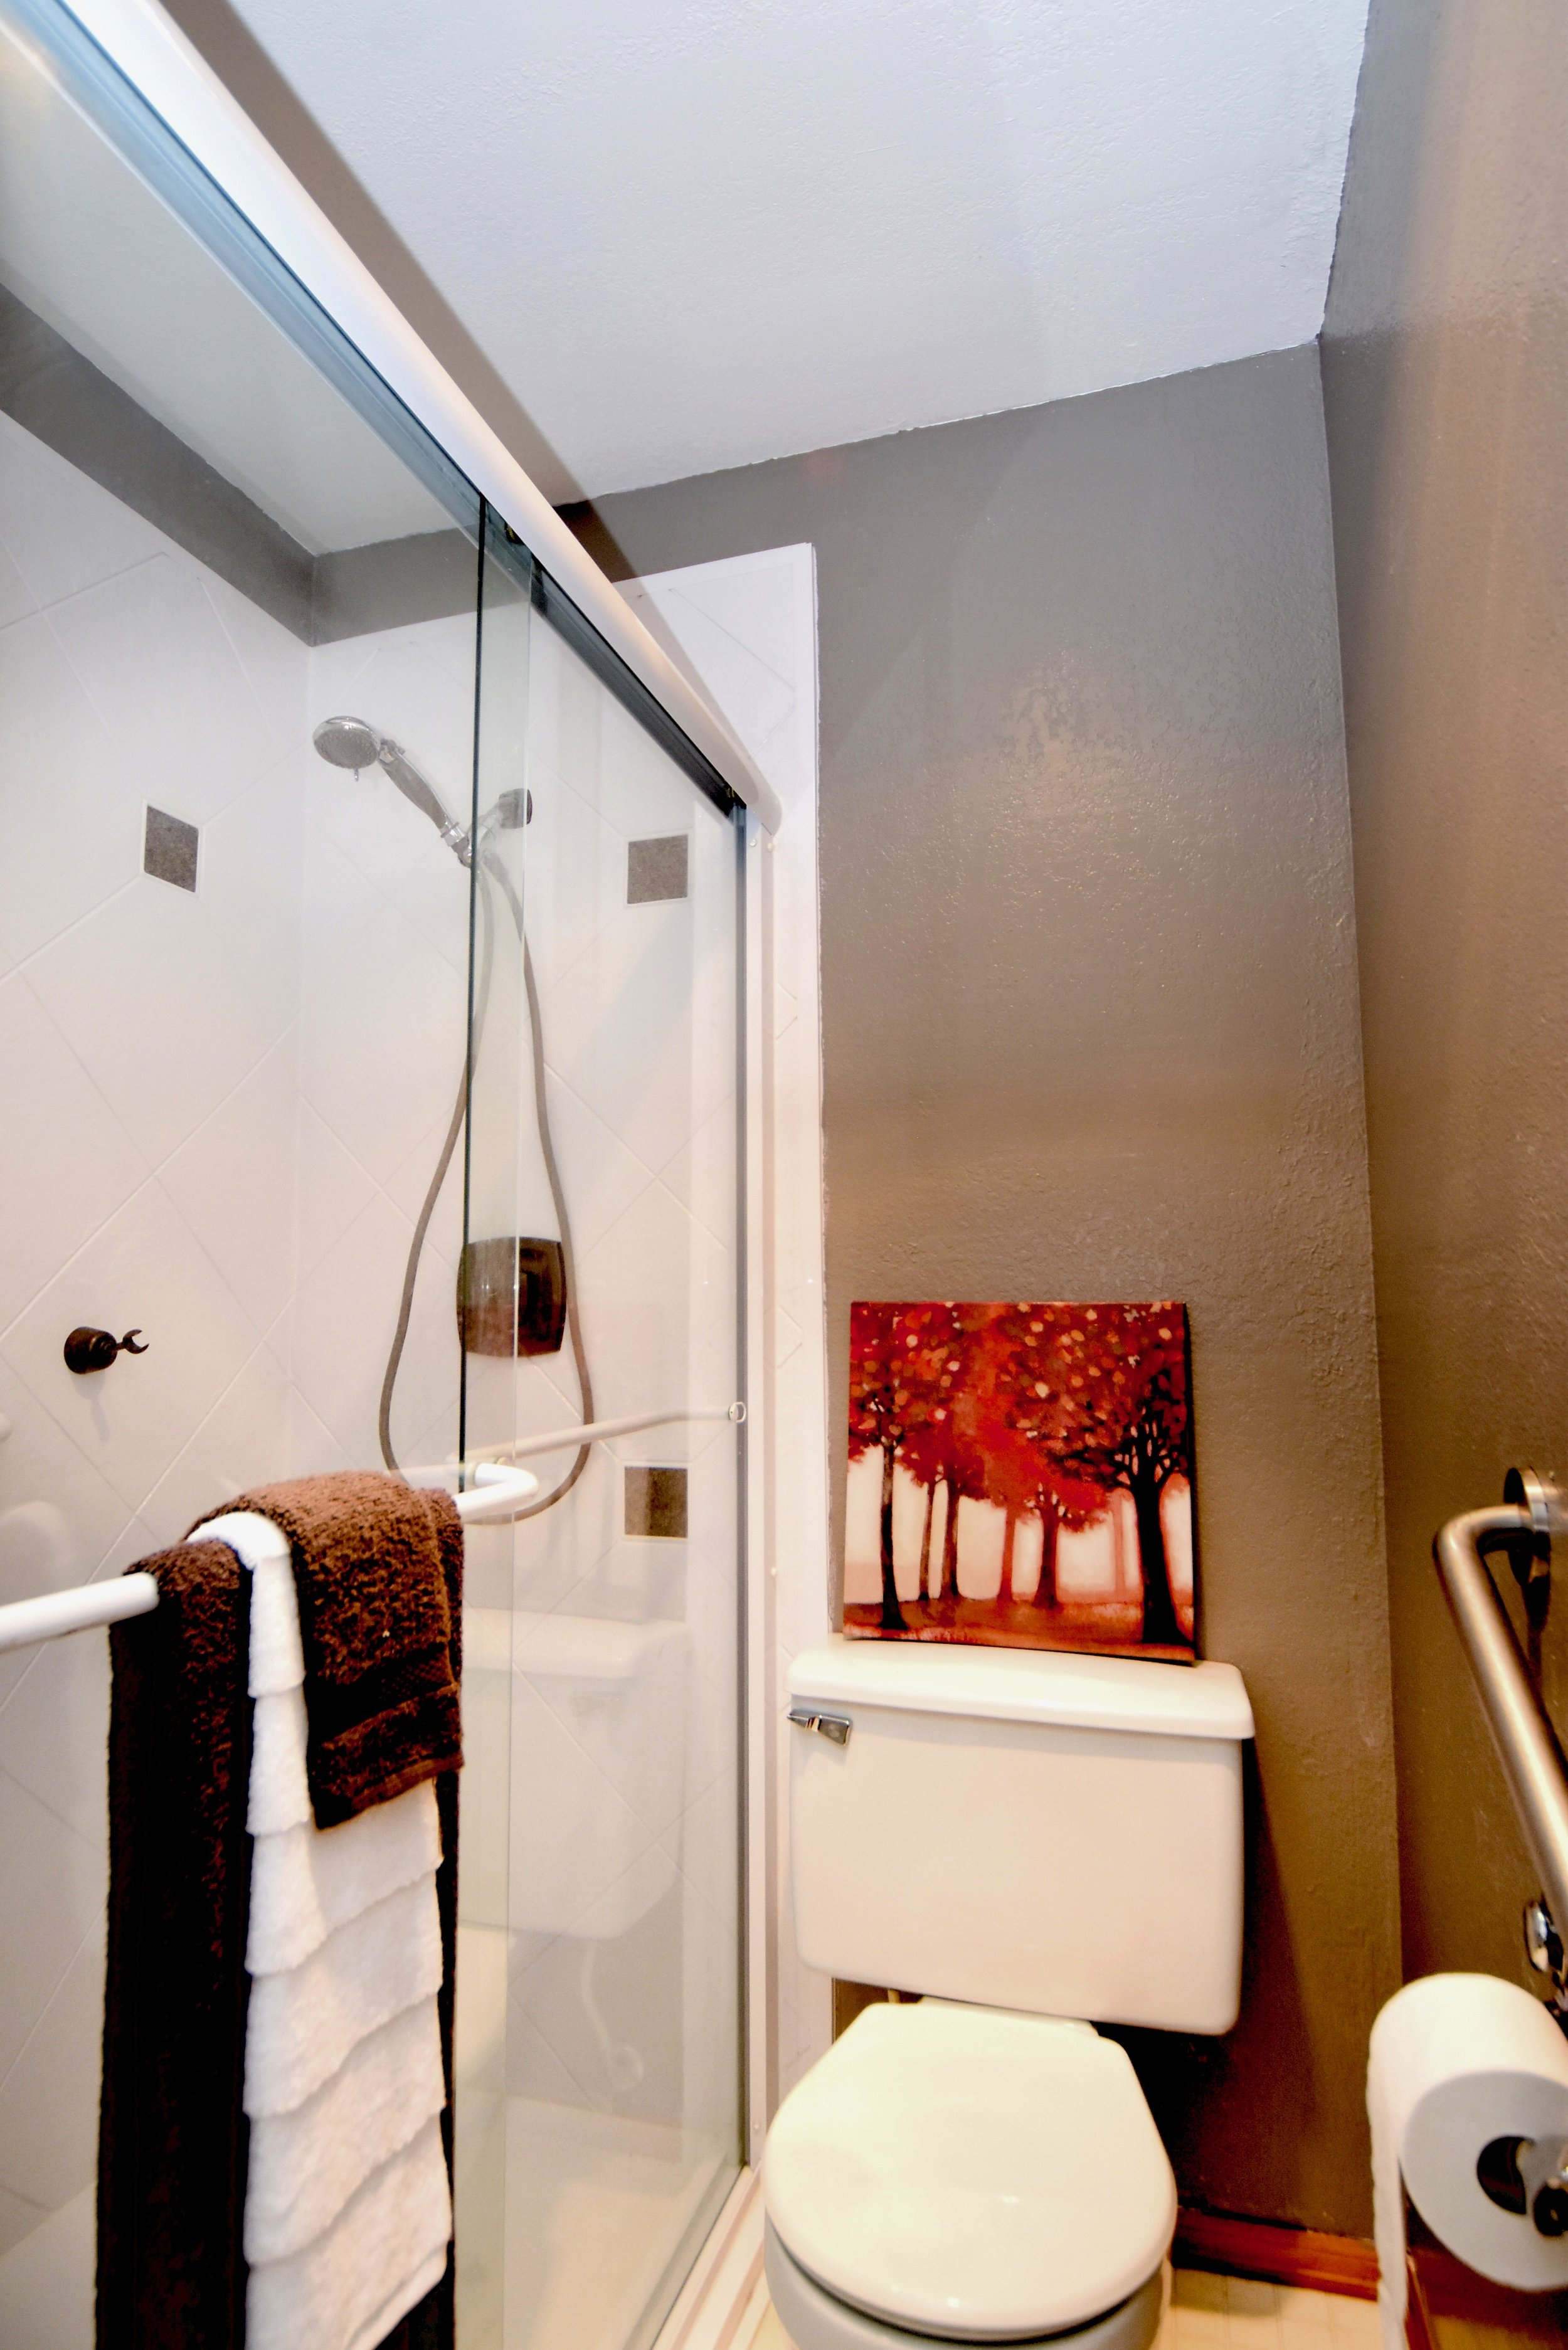 Enjoy this renovated and spacious walk-in shower!